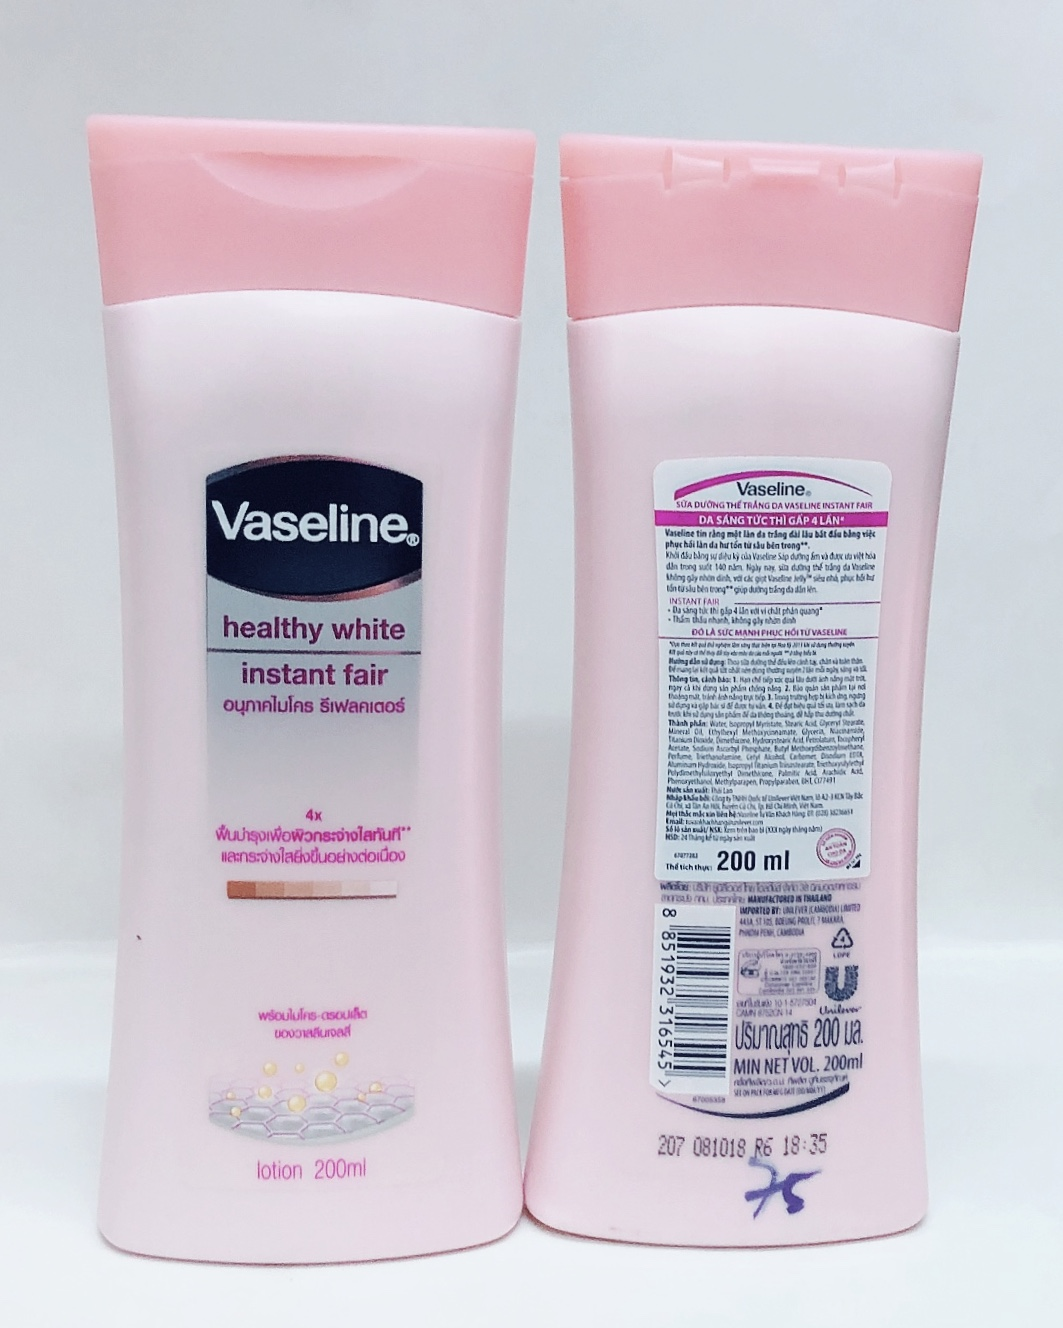 sua duong the vaseline instant fair 3